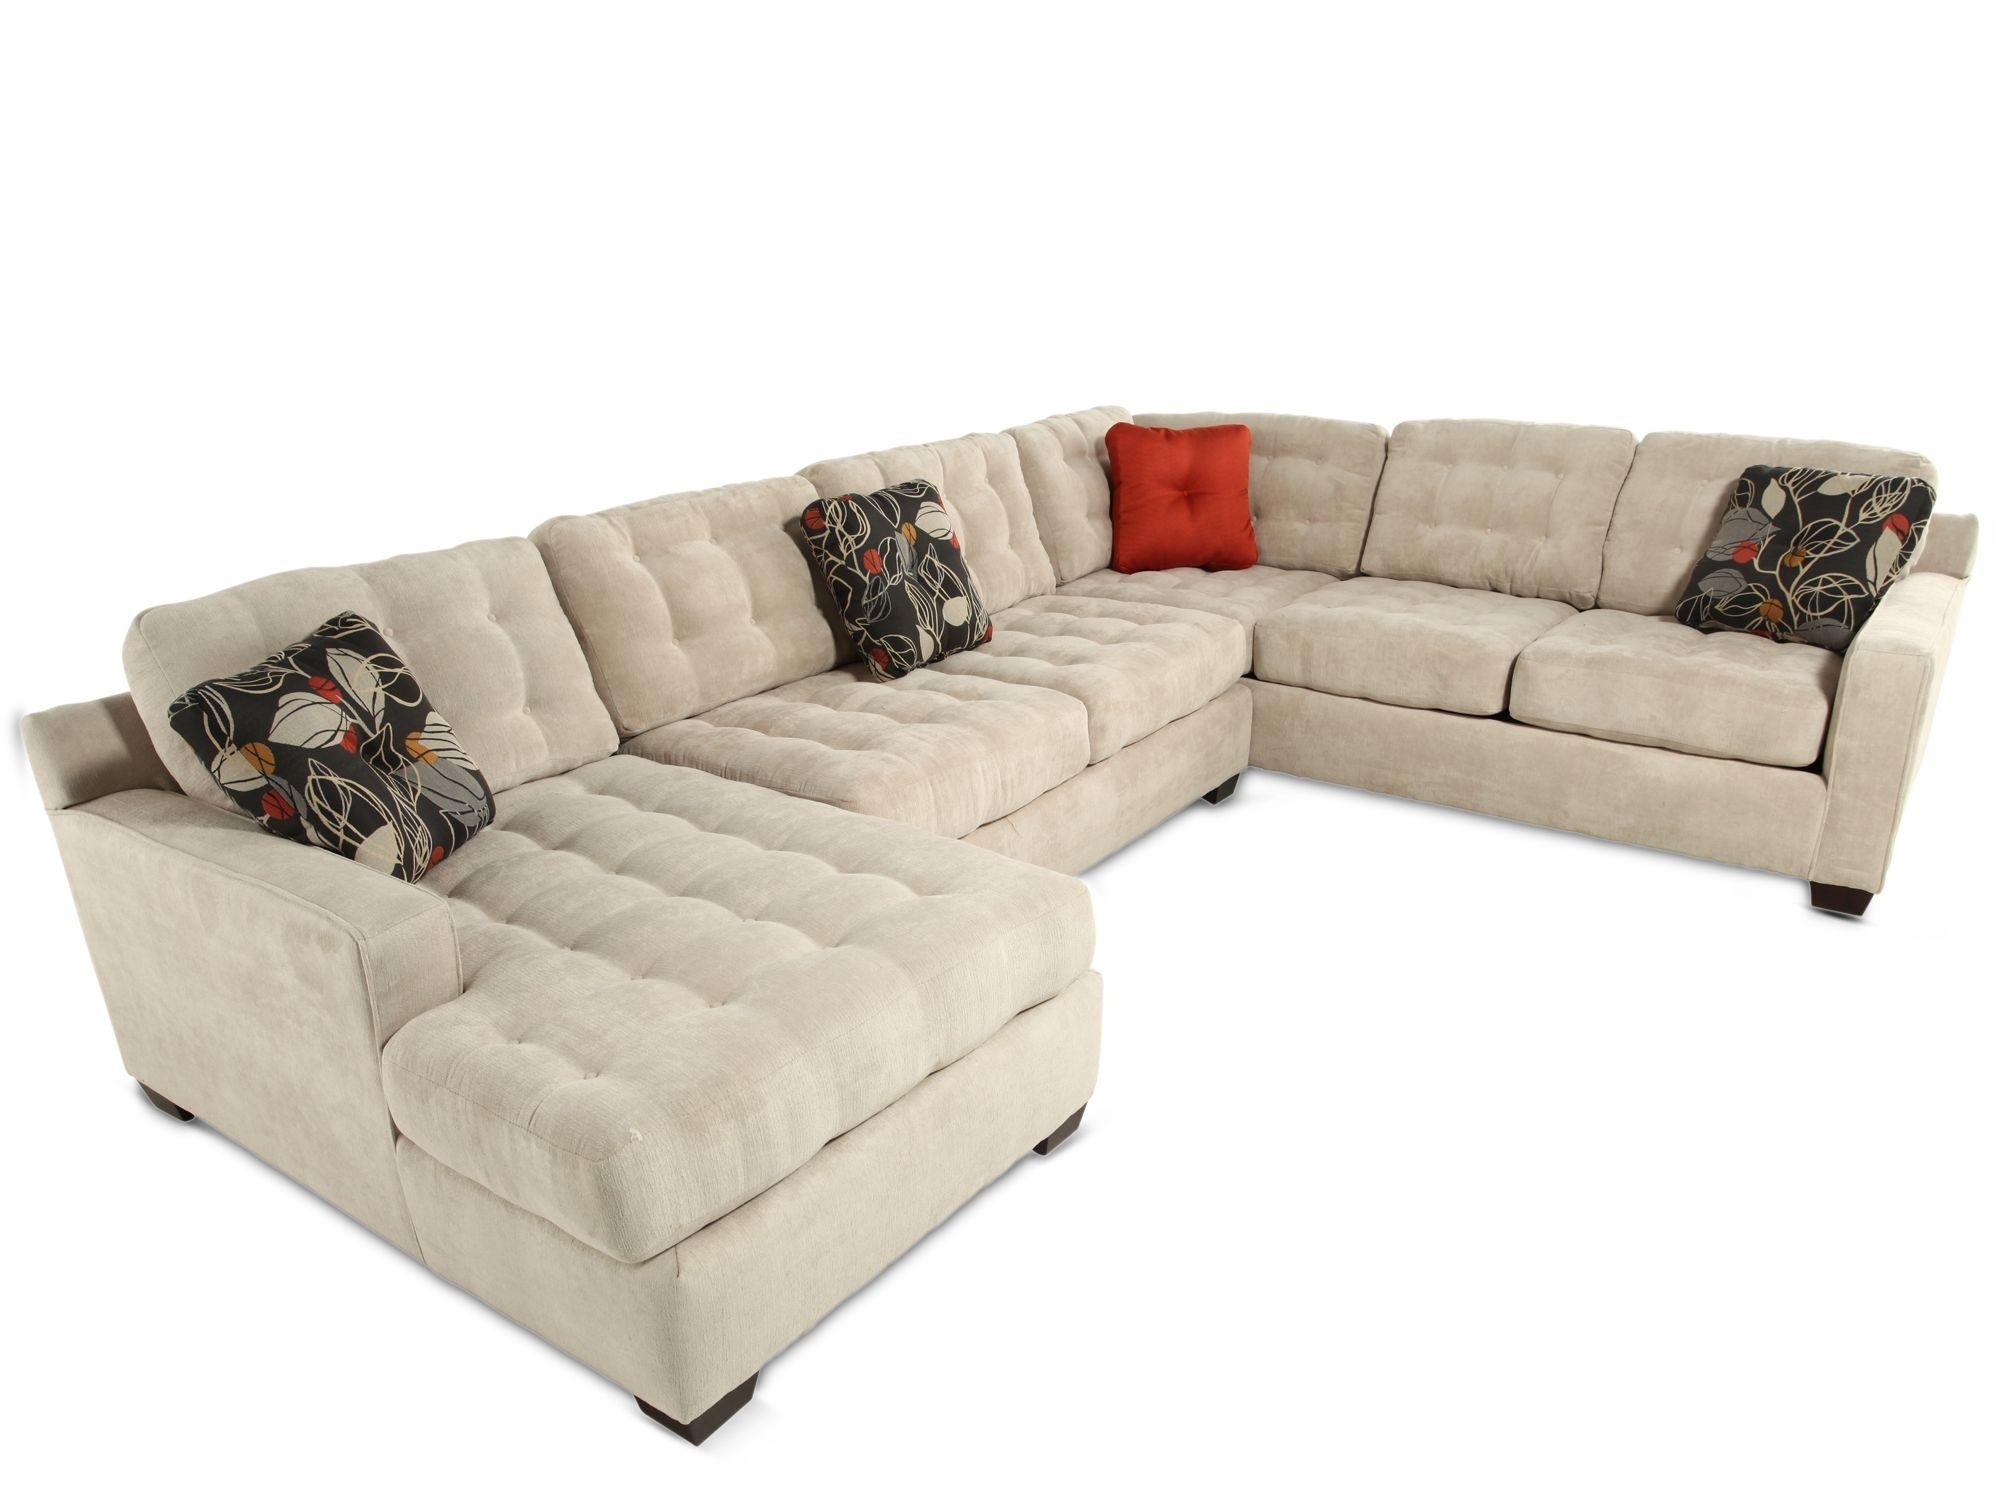 Sofas Center : Formal Living Room Sofa Design Broyhill Furniture Intended For Broyhill Emily Sofas (View 12 of 20)